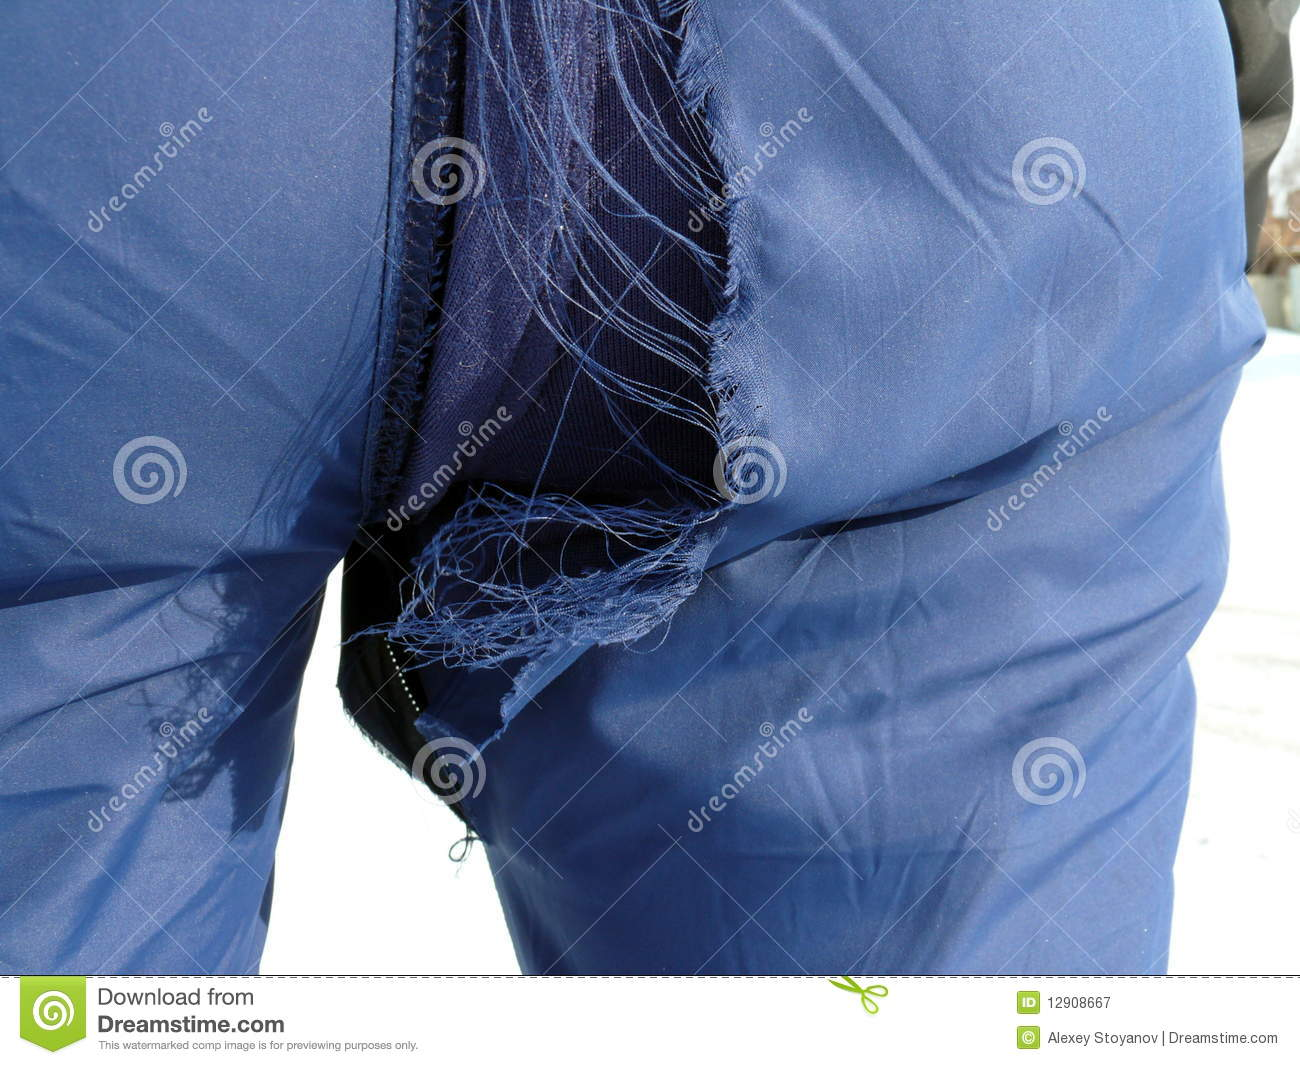 Hole in the sport trousers